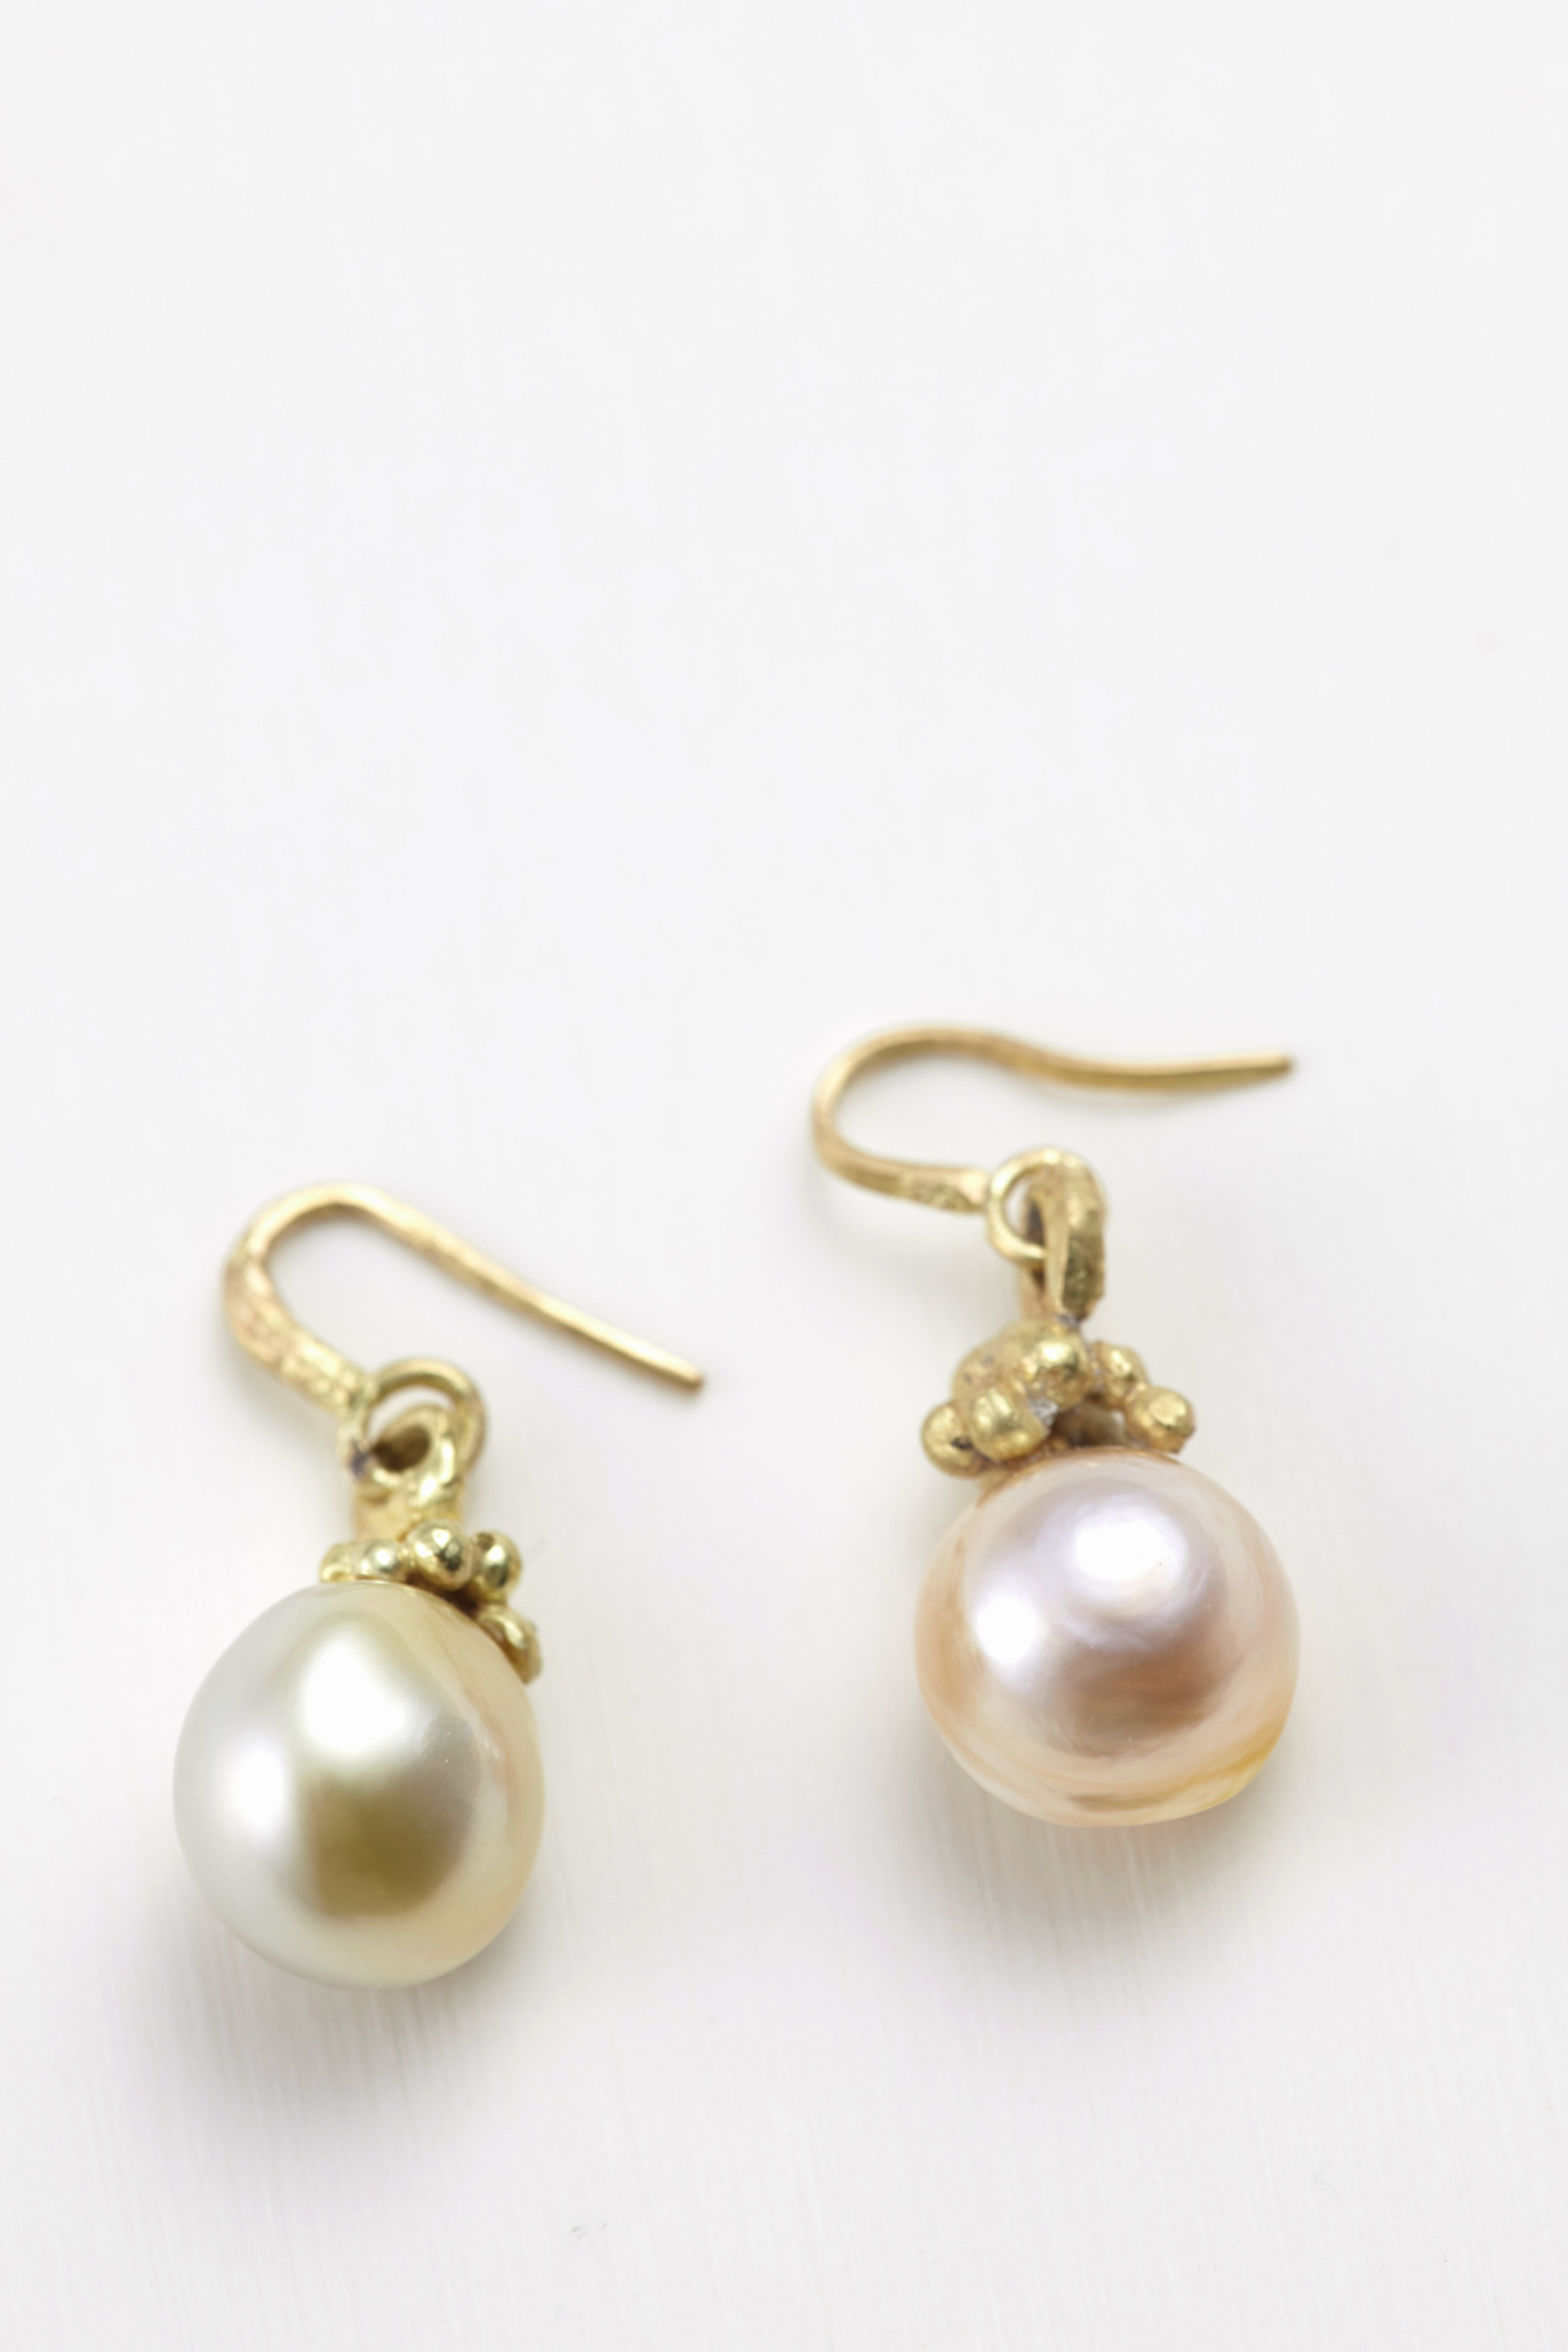 Baroque South sea pearl earrings/ gold, 18ct gold -E300126